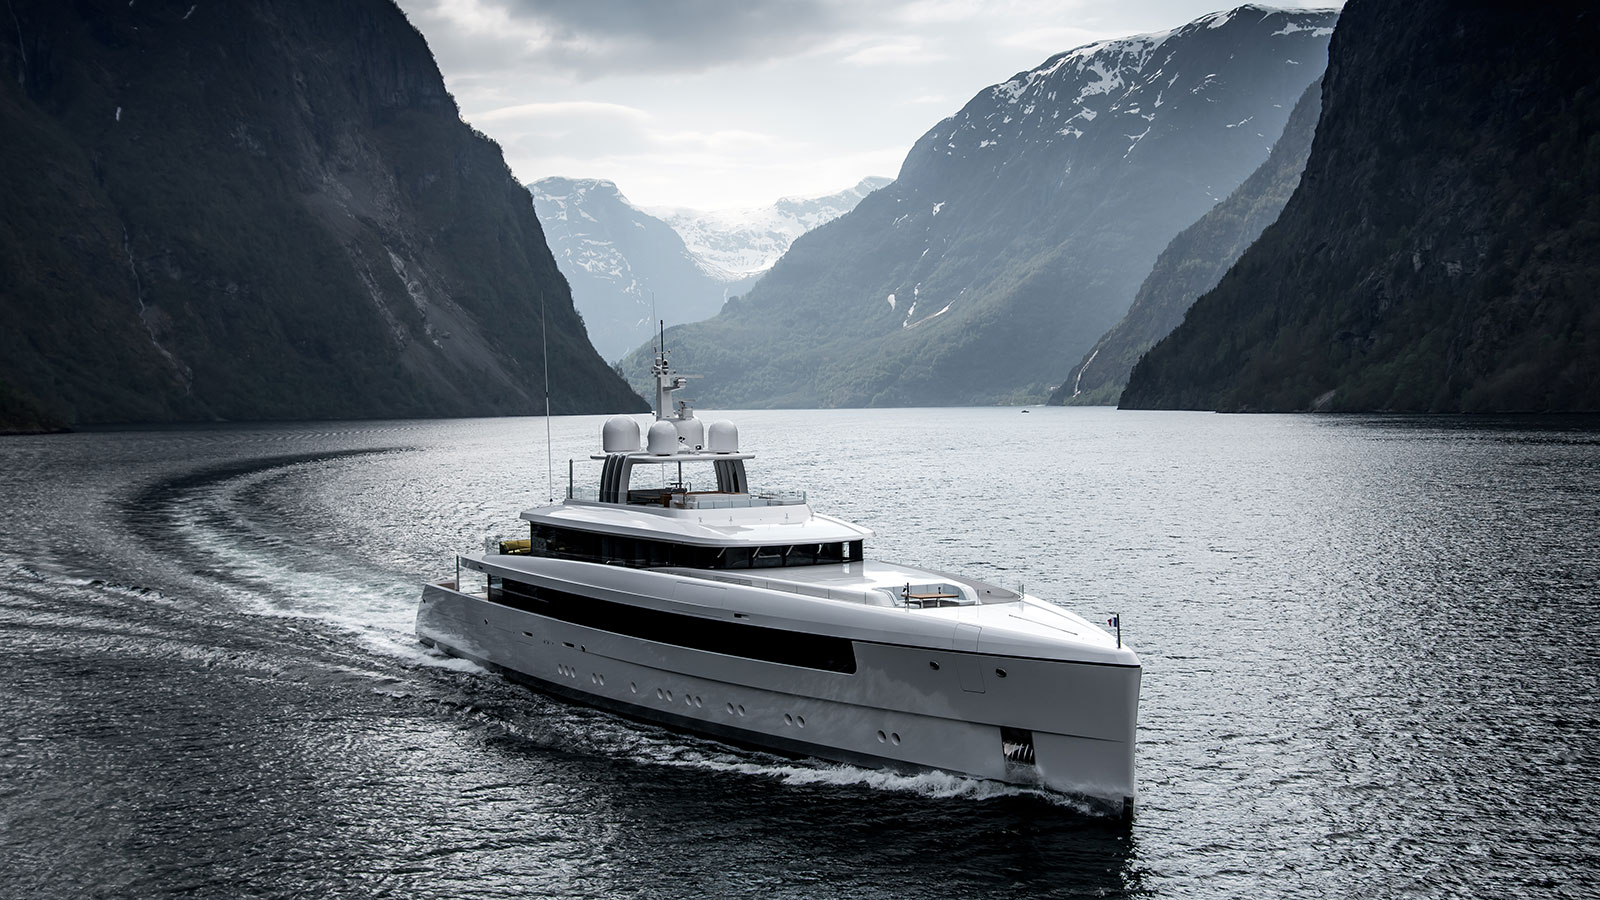 this-58-metre-feadship-superyacht-was-designed-by-vitruvius-yachts-credit-dutch-yachting